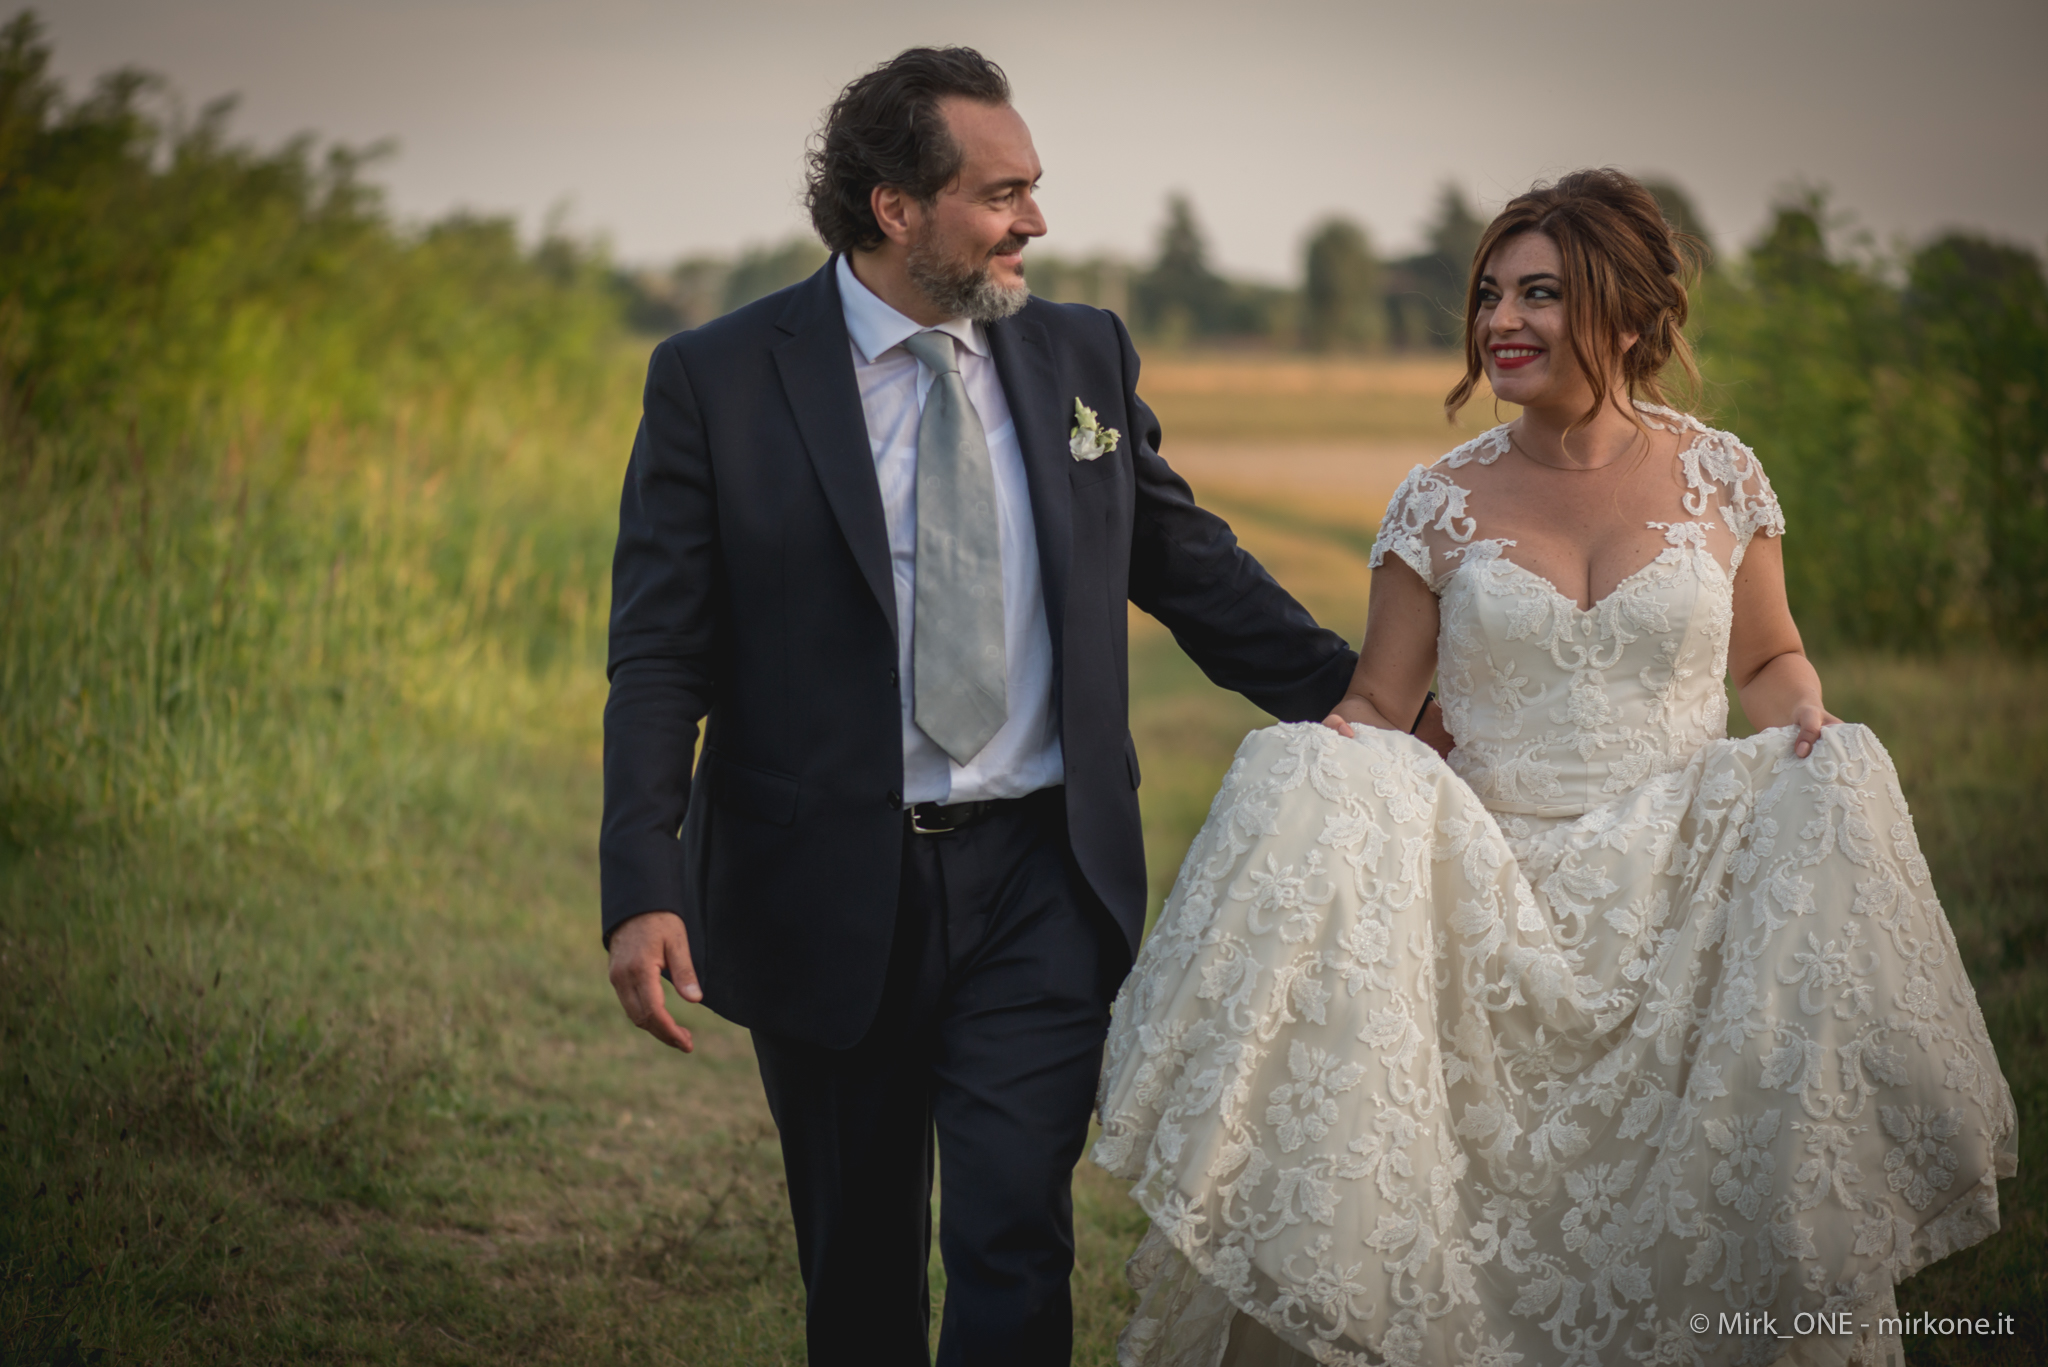 http://lnx.mirkone.it/wp-content/uploads/2015/07/mirk_ONE-fotografo-matrimonio-00801.jpg